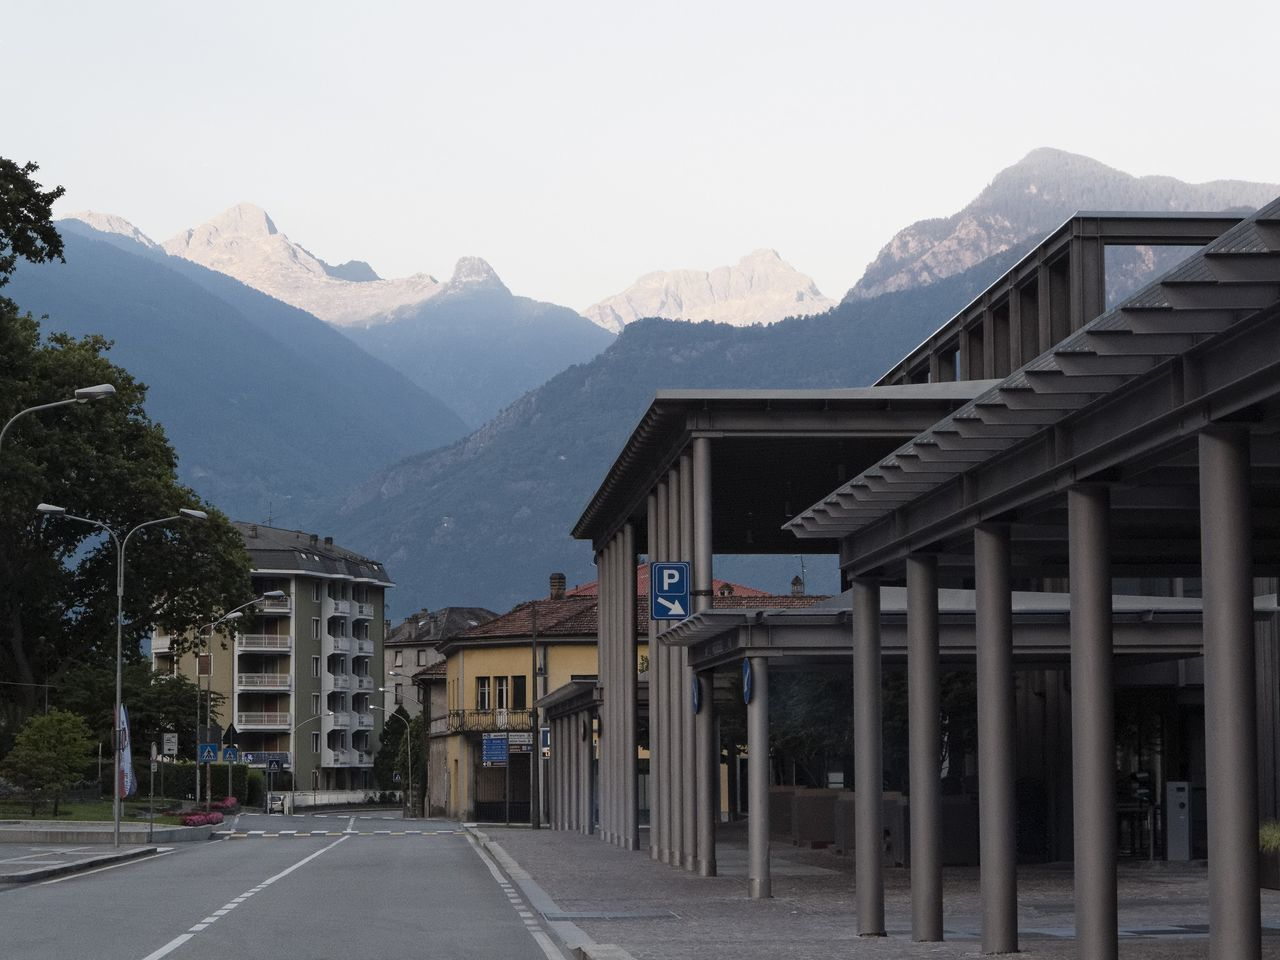 Architecture Beauty In Nature Building Exterior Clear Sky Day Empty Leading Majestic Mountain Mountain Range Nature No People Non-urban Scene Outdoors Physical Geography Remote Road Scenics Solitude The Way Forward Tranquil Scene Tranquility Transportation